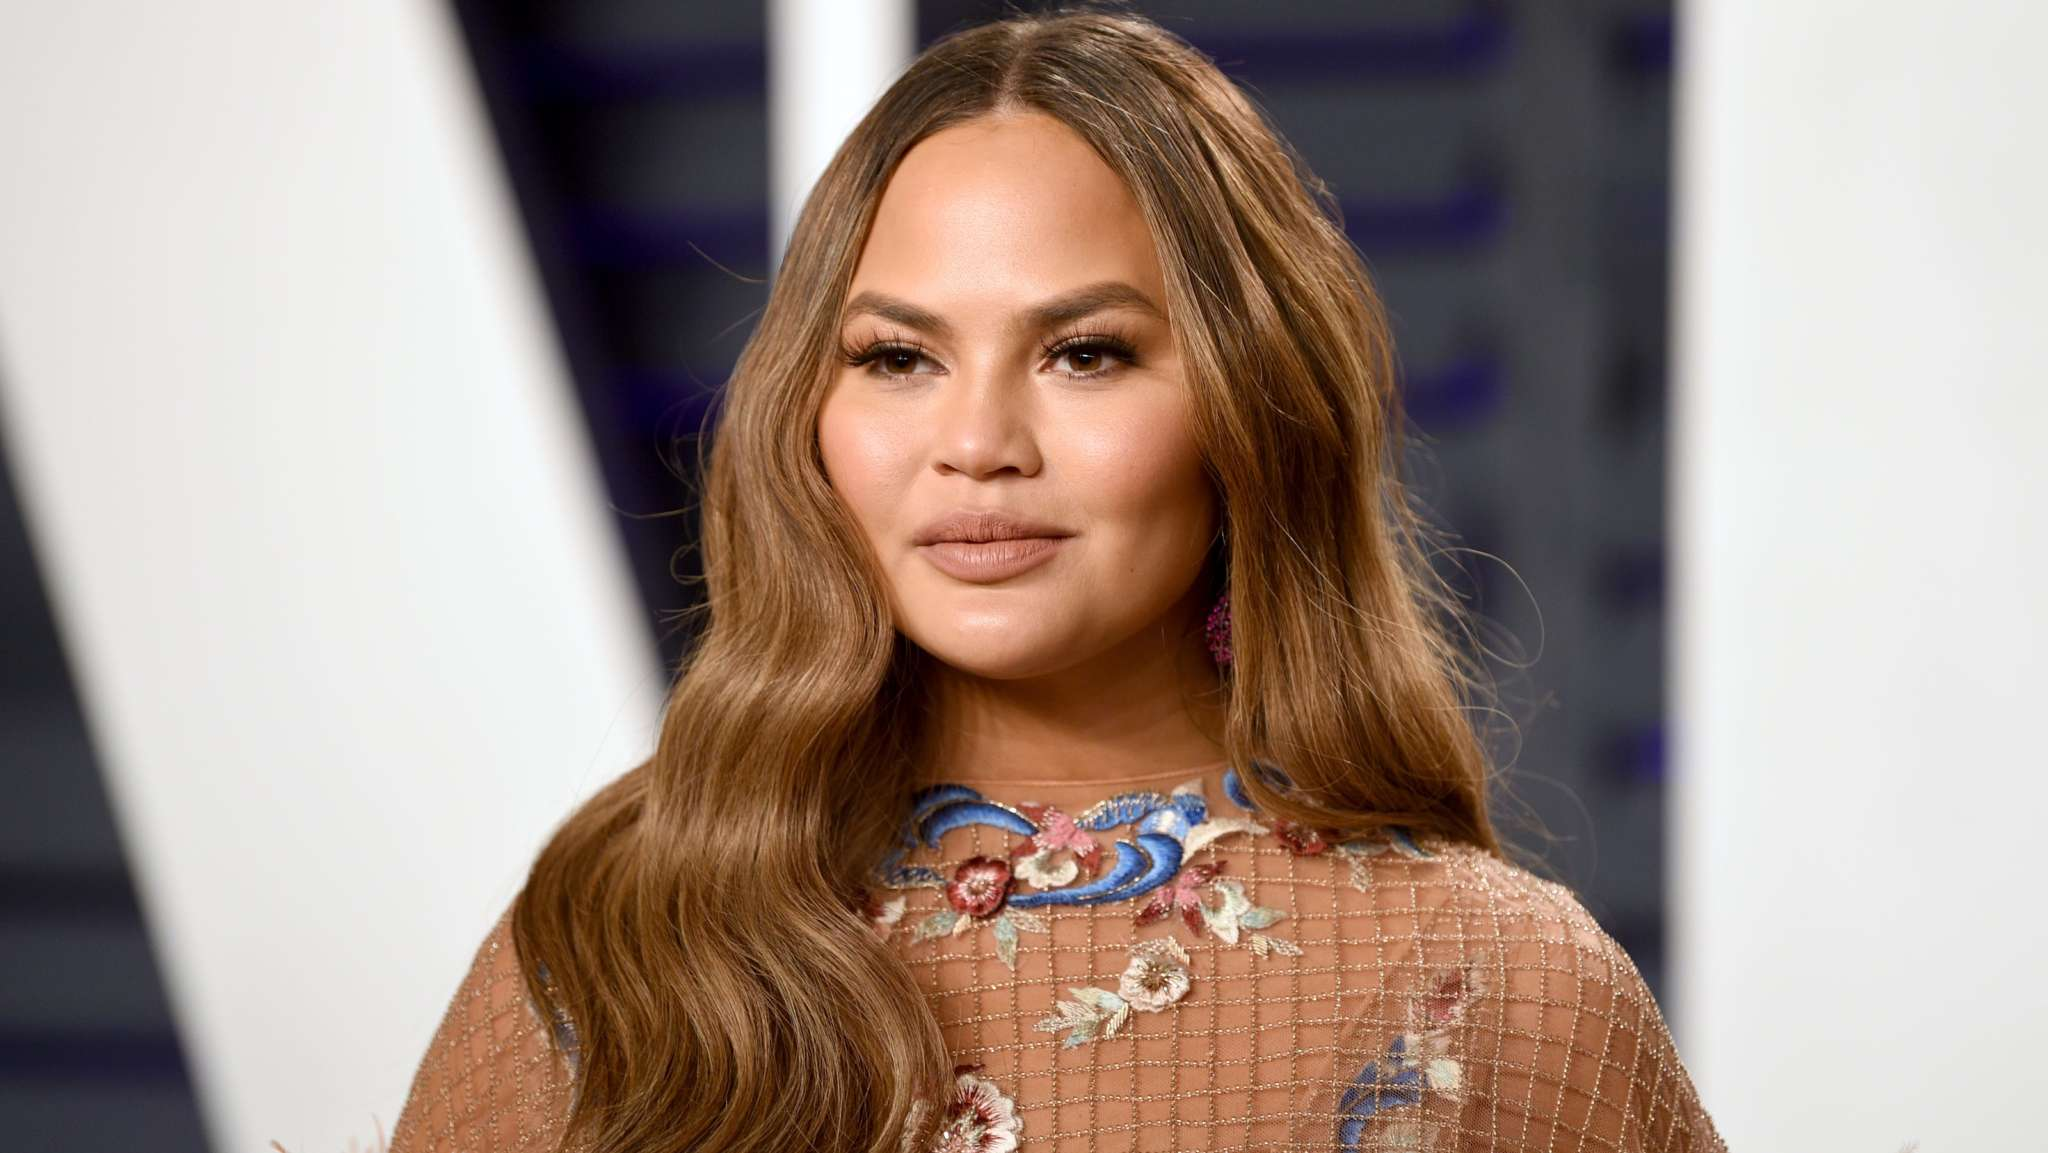 Chrissy Teigen Forced To Be On 'Complete And Total Bed Rest' Amid High-Risk Pregnancy – Details!